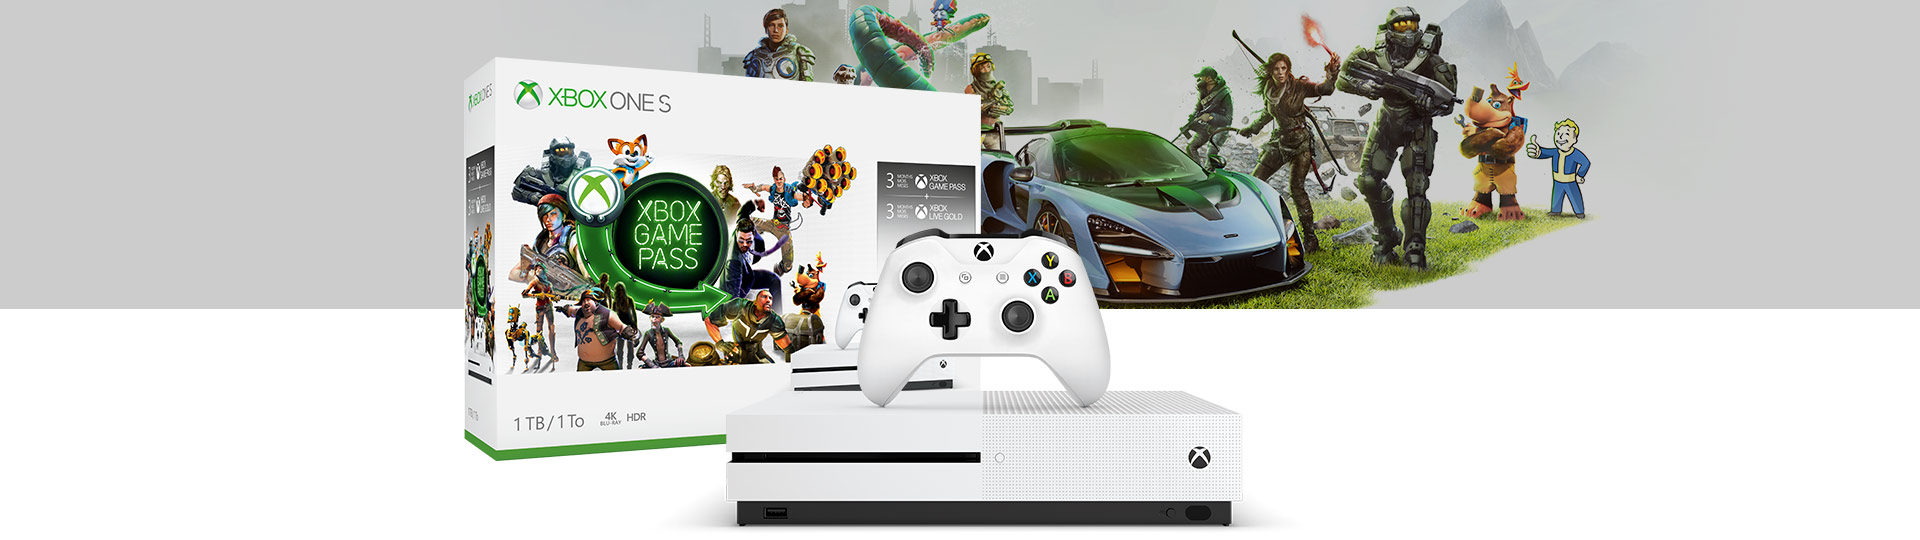 Xbox One S Starter bundle box, console, and controller with background image of several game characters